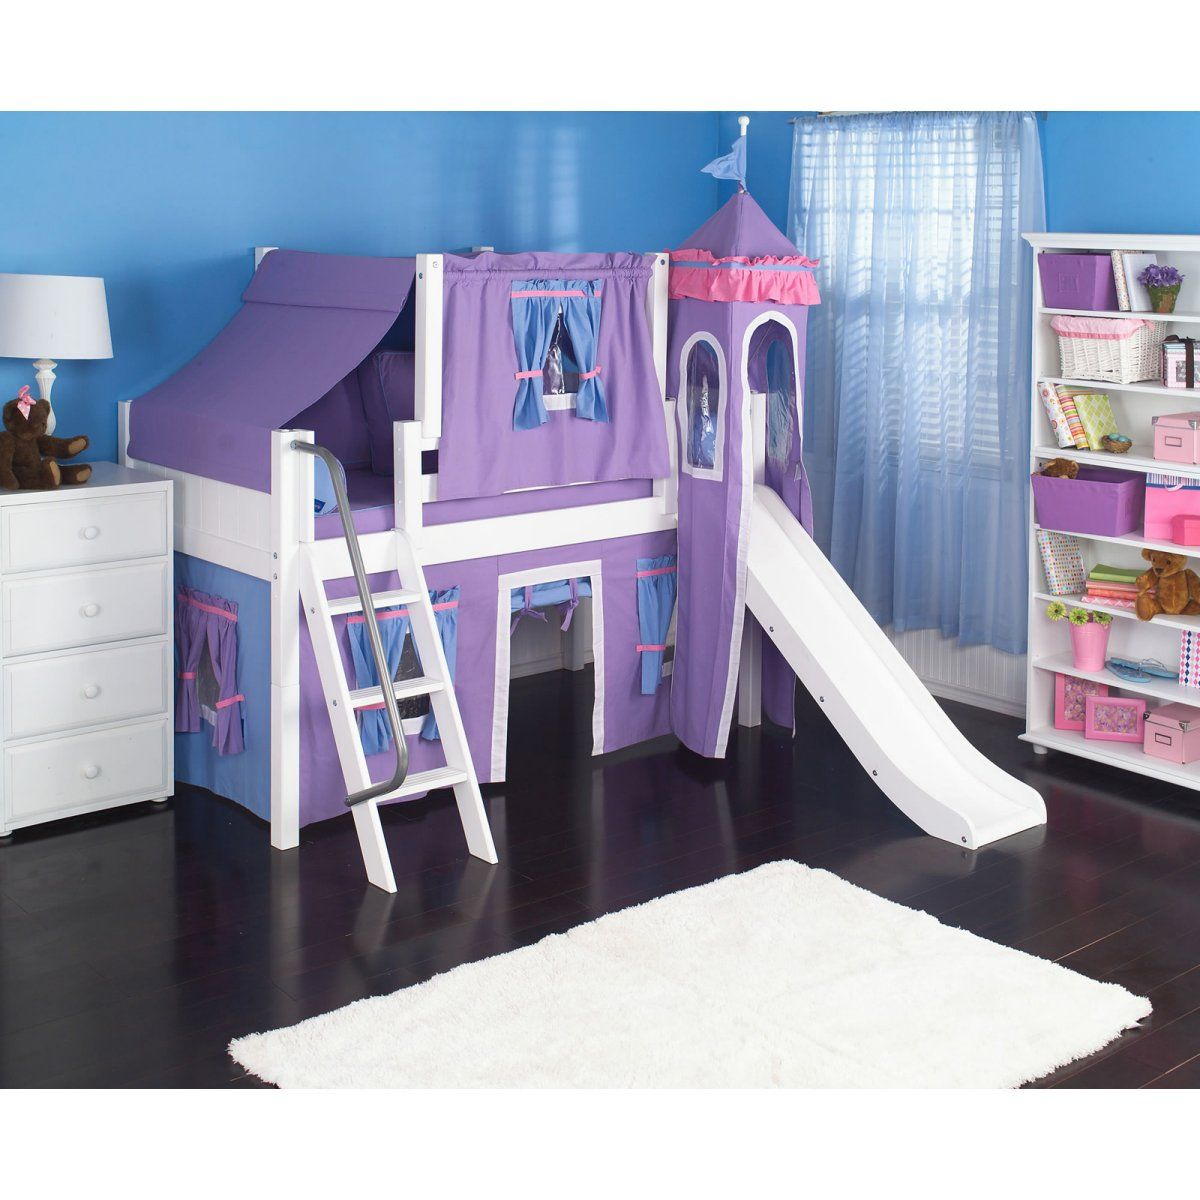 Bedroom furniture for girls castle - Girl Loft Beds